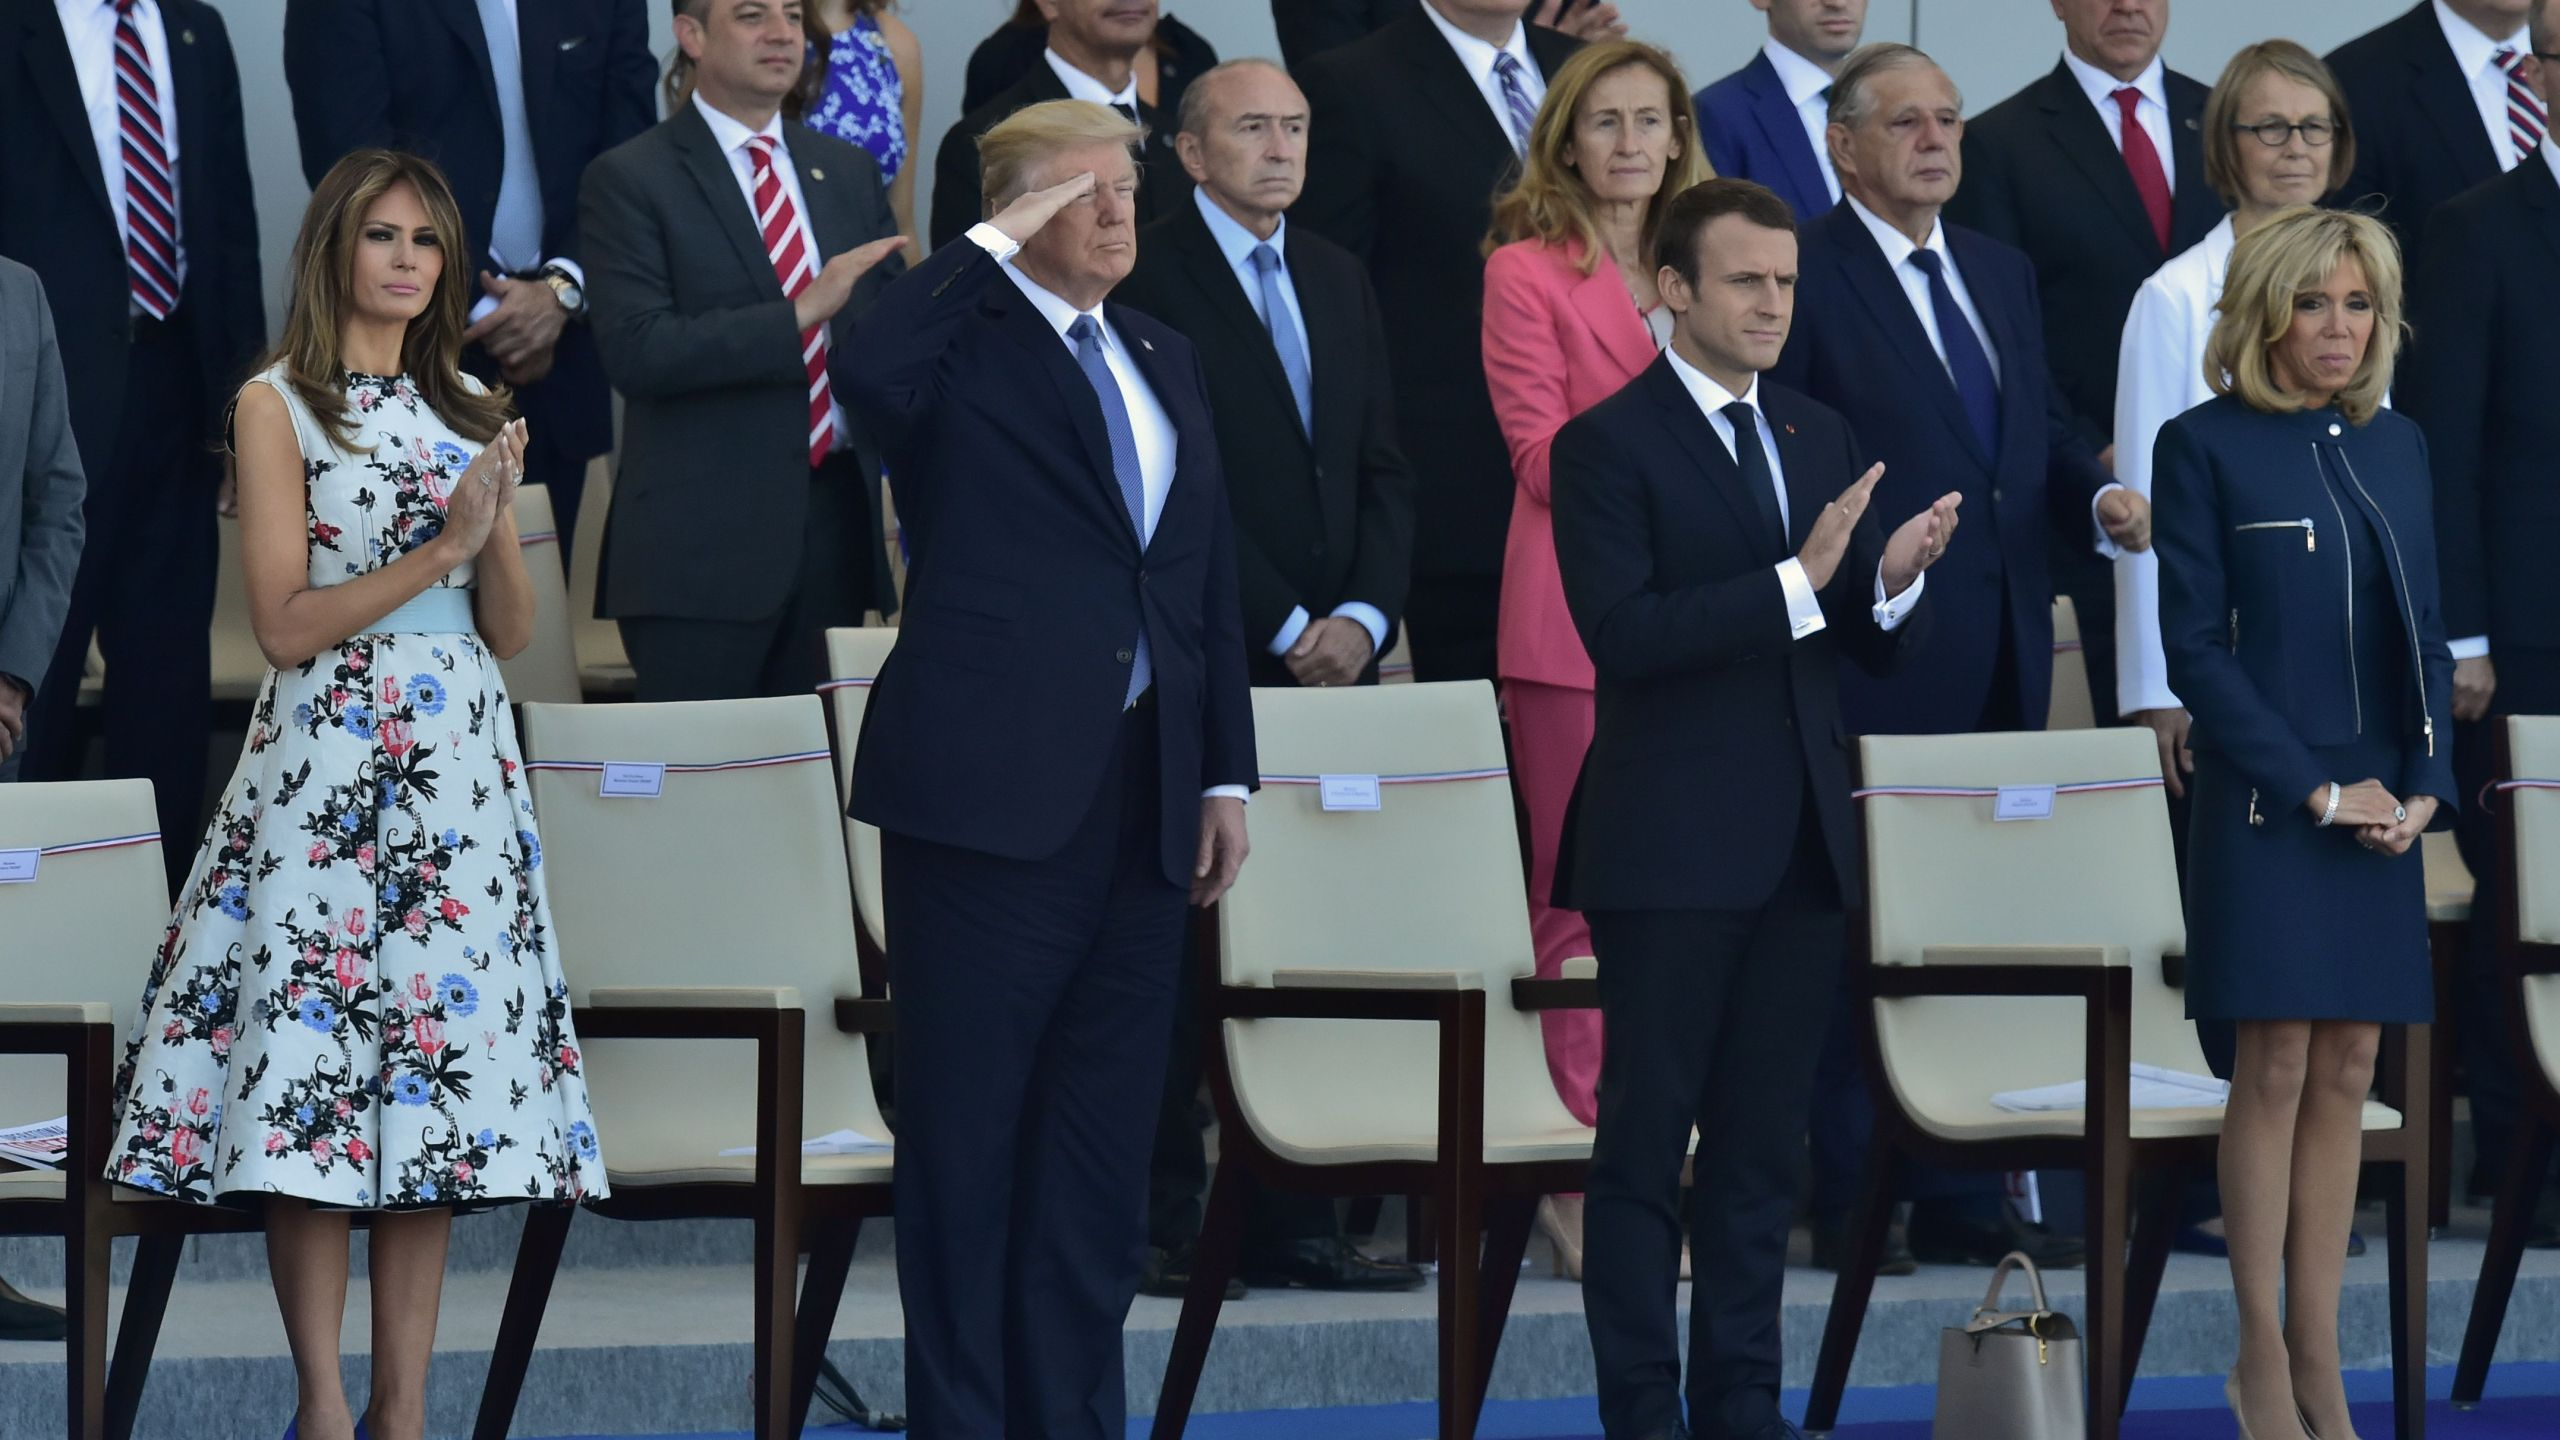 President Donald Trump salutes as French President Emmanuel Macron, his wife Brigitte Macron, and U.S. First Lady Melania Trump watch the annual Bastille Day military parade on the Champs-Elysees in Paris on July 14, 2017. (Credit: CHRISTOPHE ARCHAMBAULT/AFP/Getty Images)